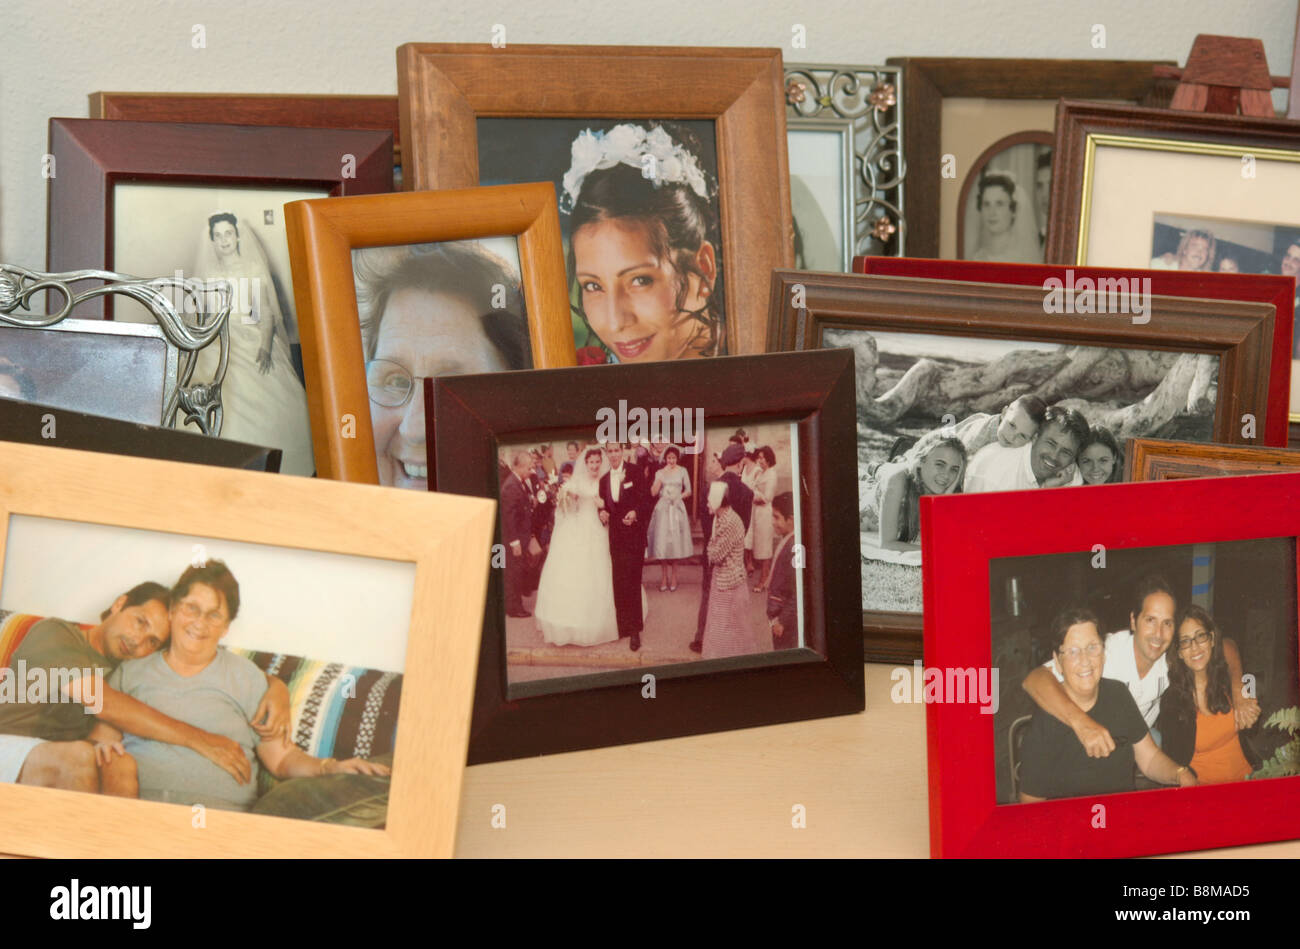 A group of photographs in someones home - Stock Image